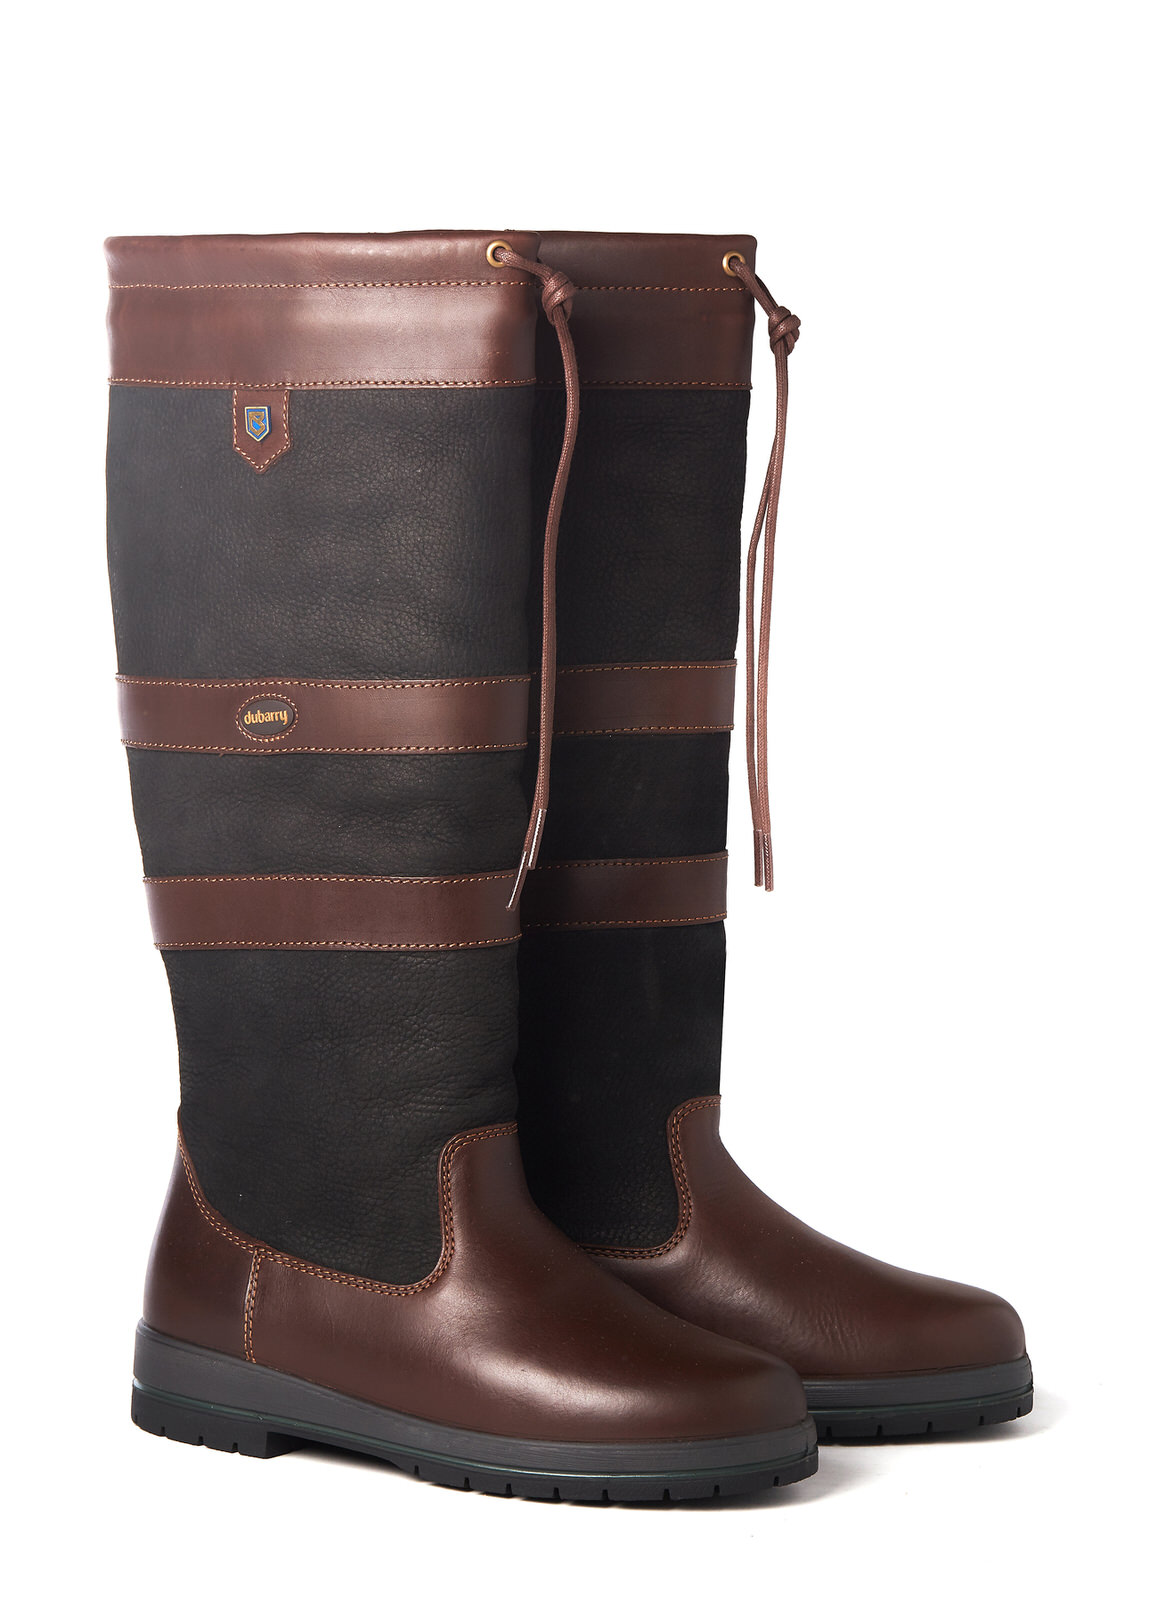 Galway ExtraFit™ Country Boot - Black/Brown